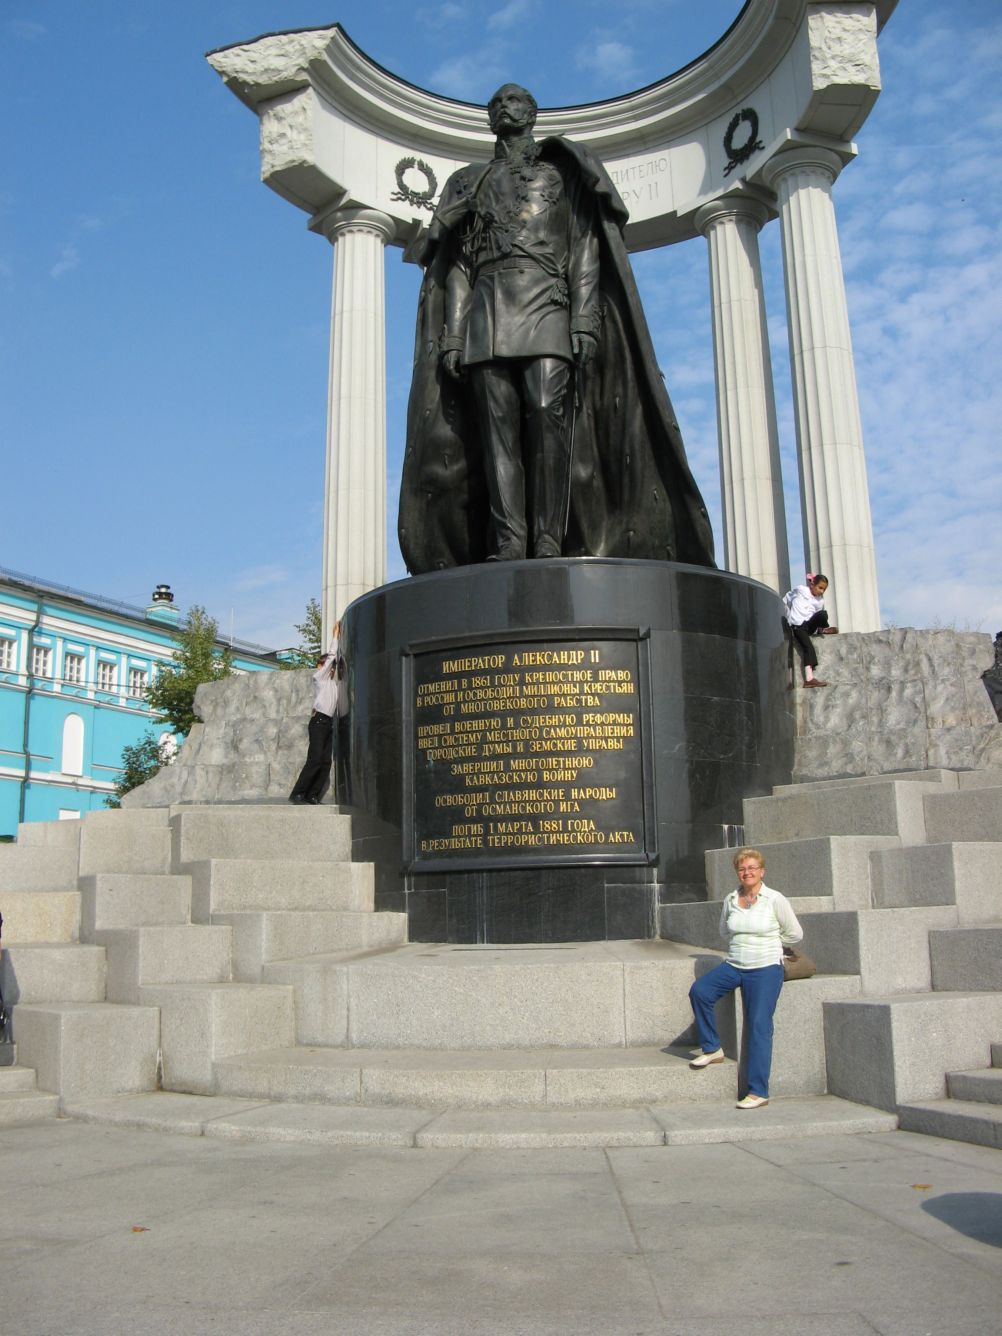 Monoment of Alexander II